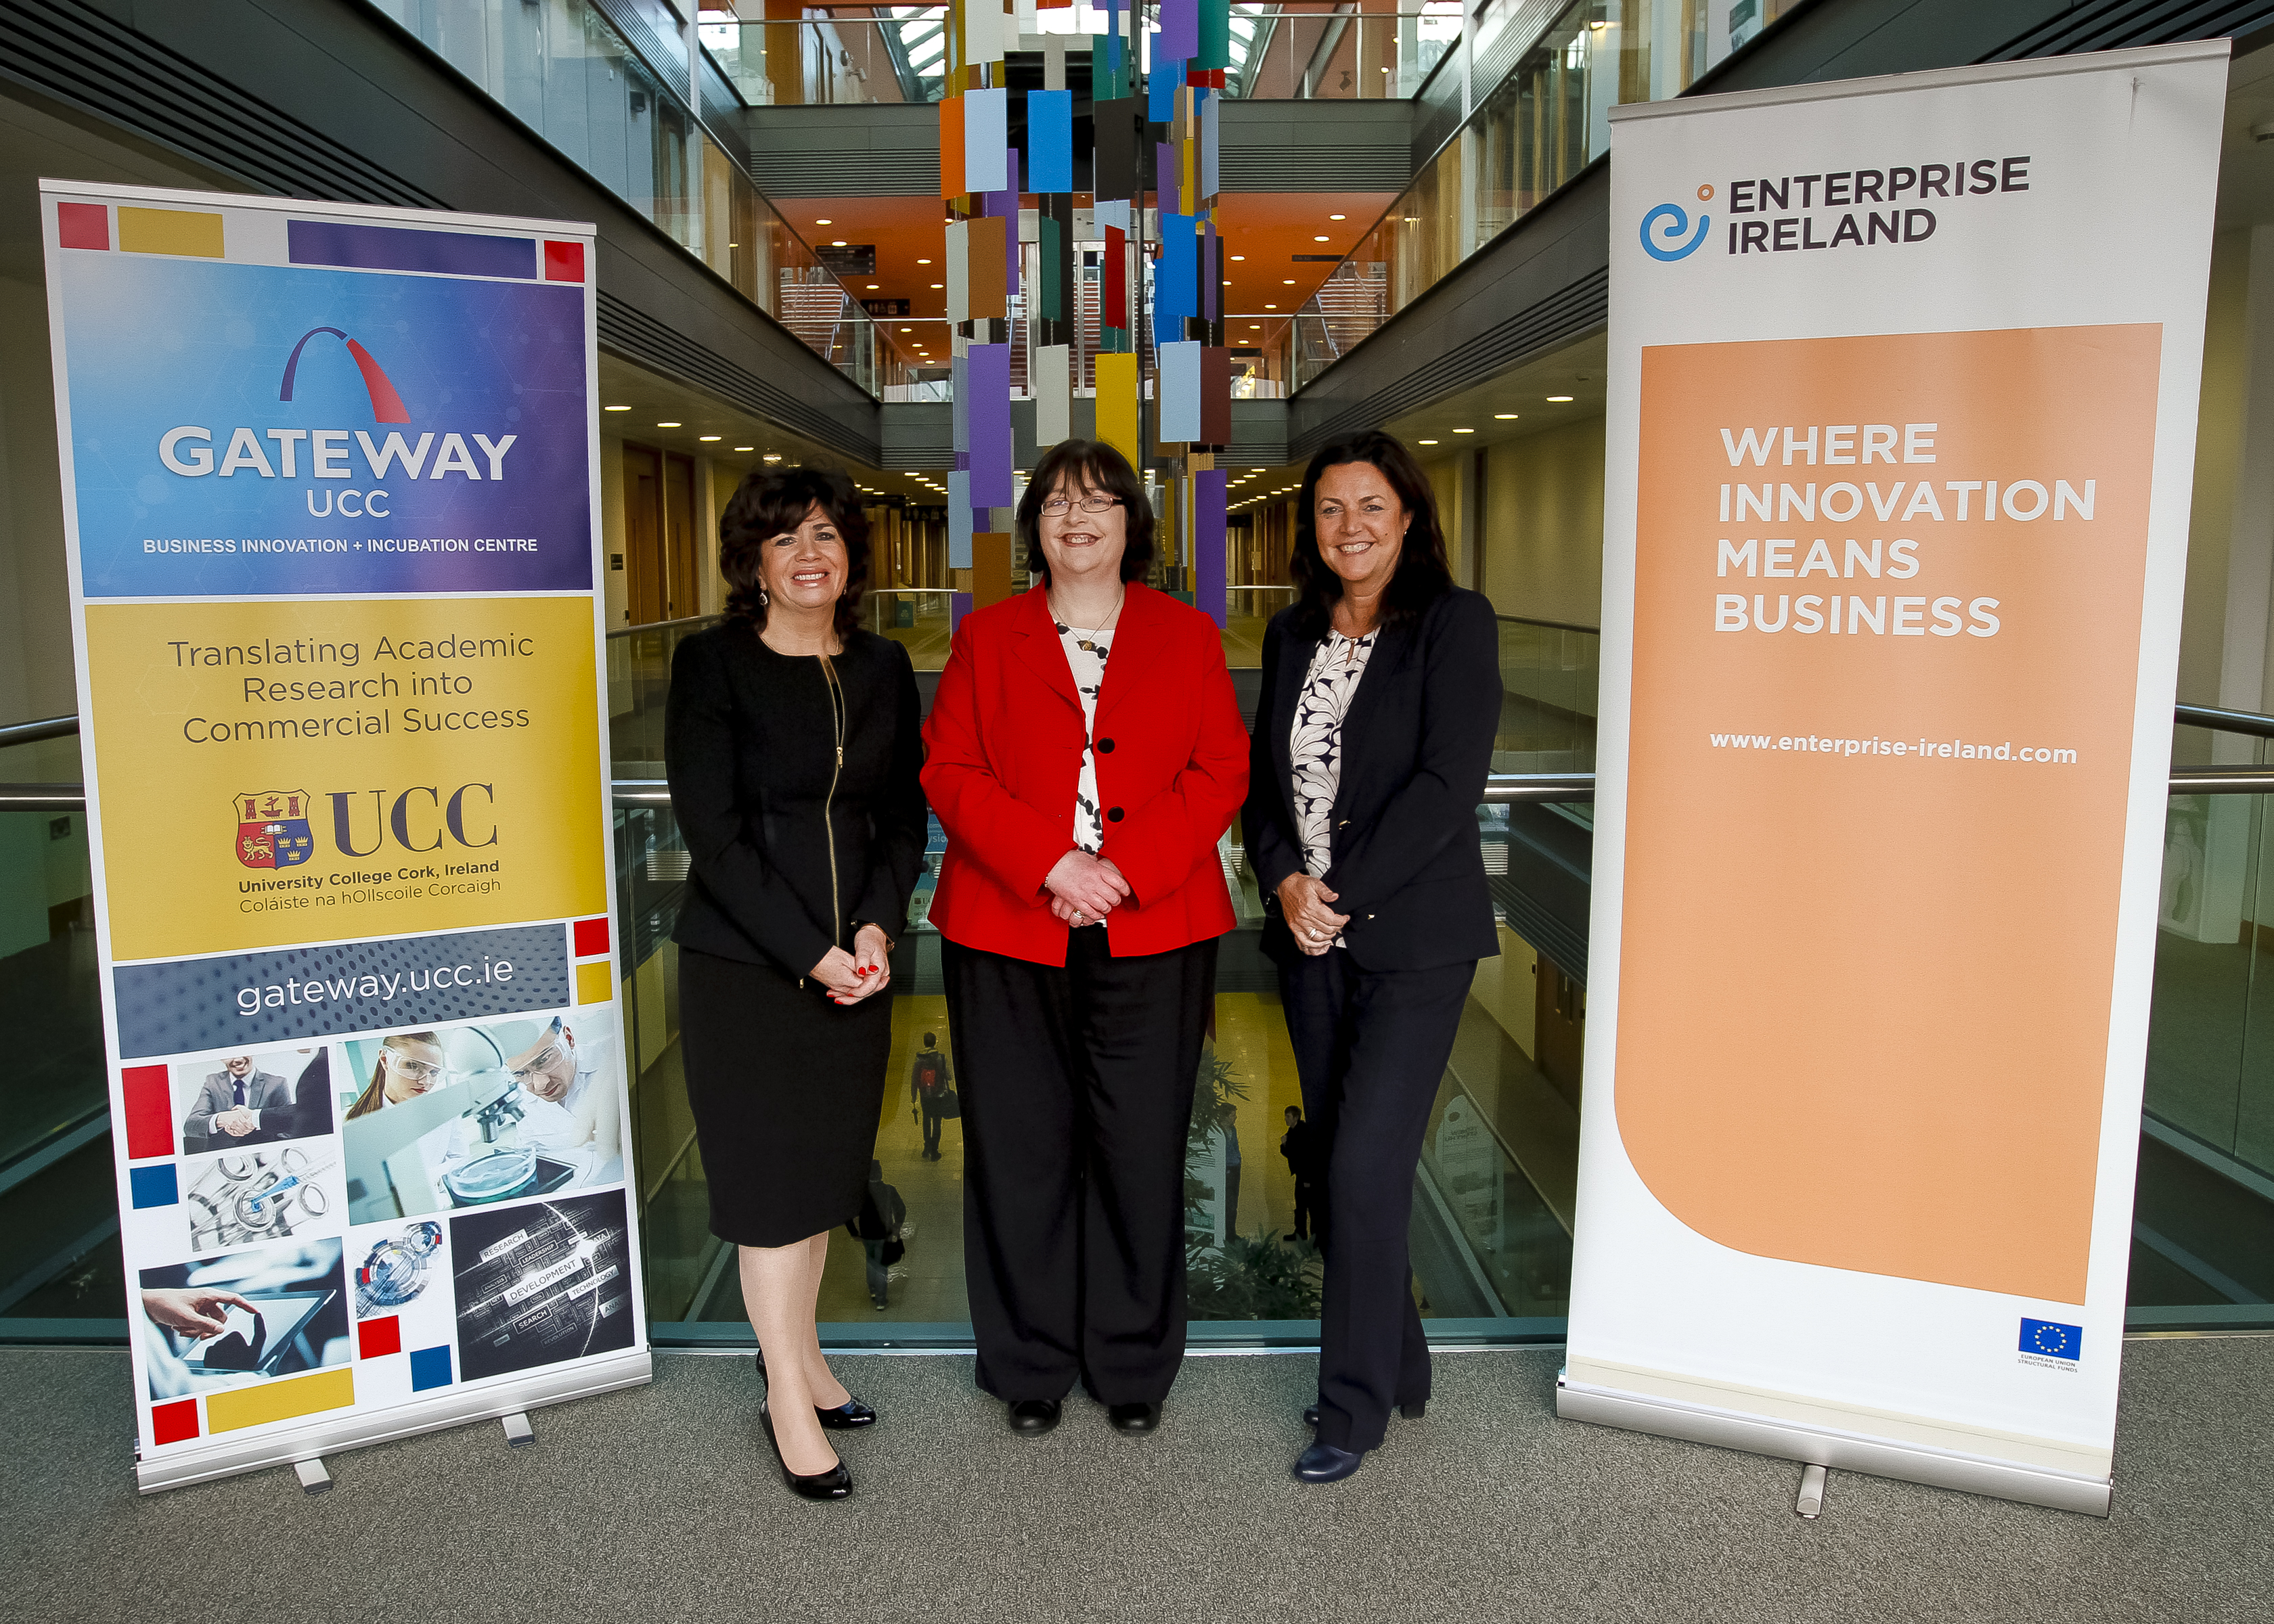 GATEWAY UCC Hosts EI International Competitive Start Funding Pitching Event